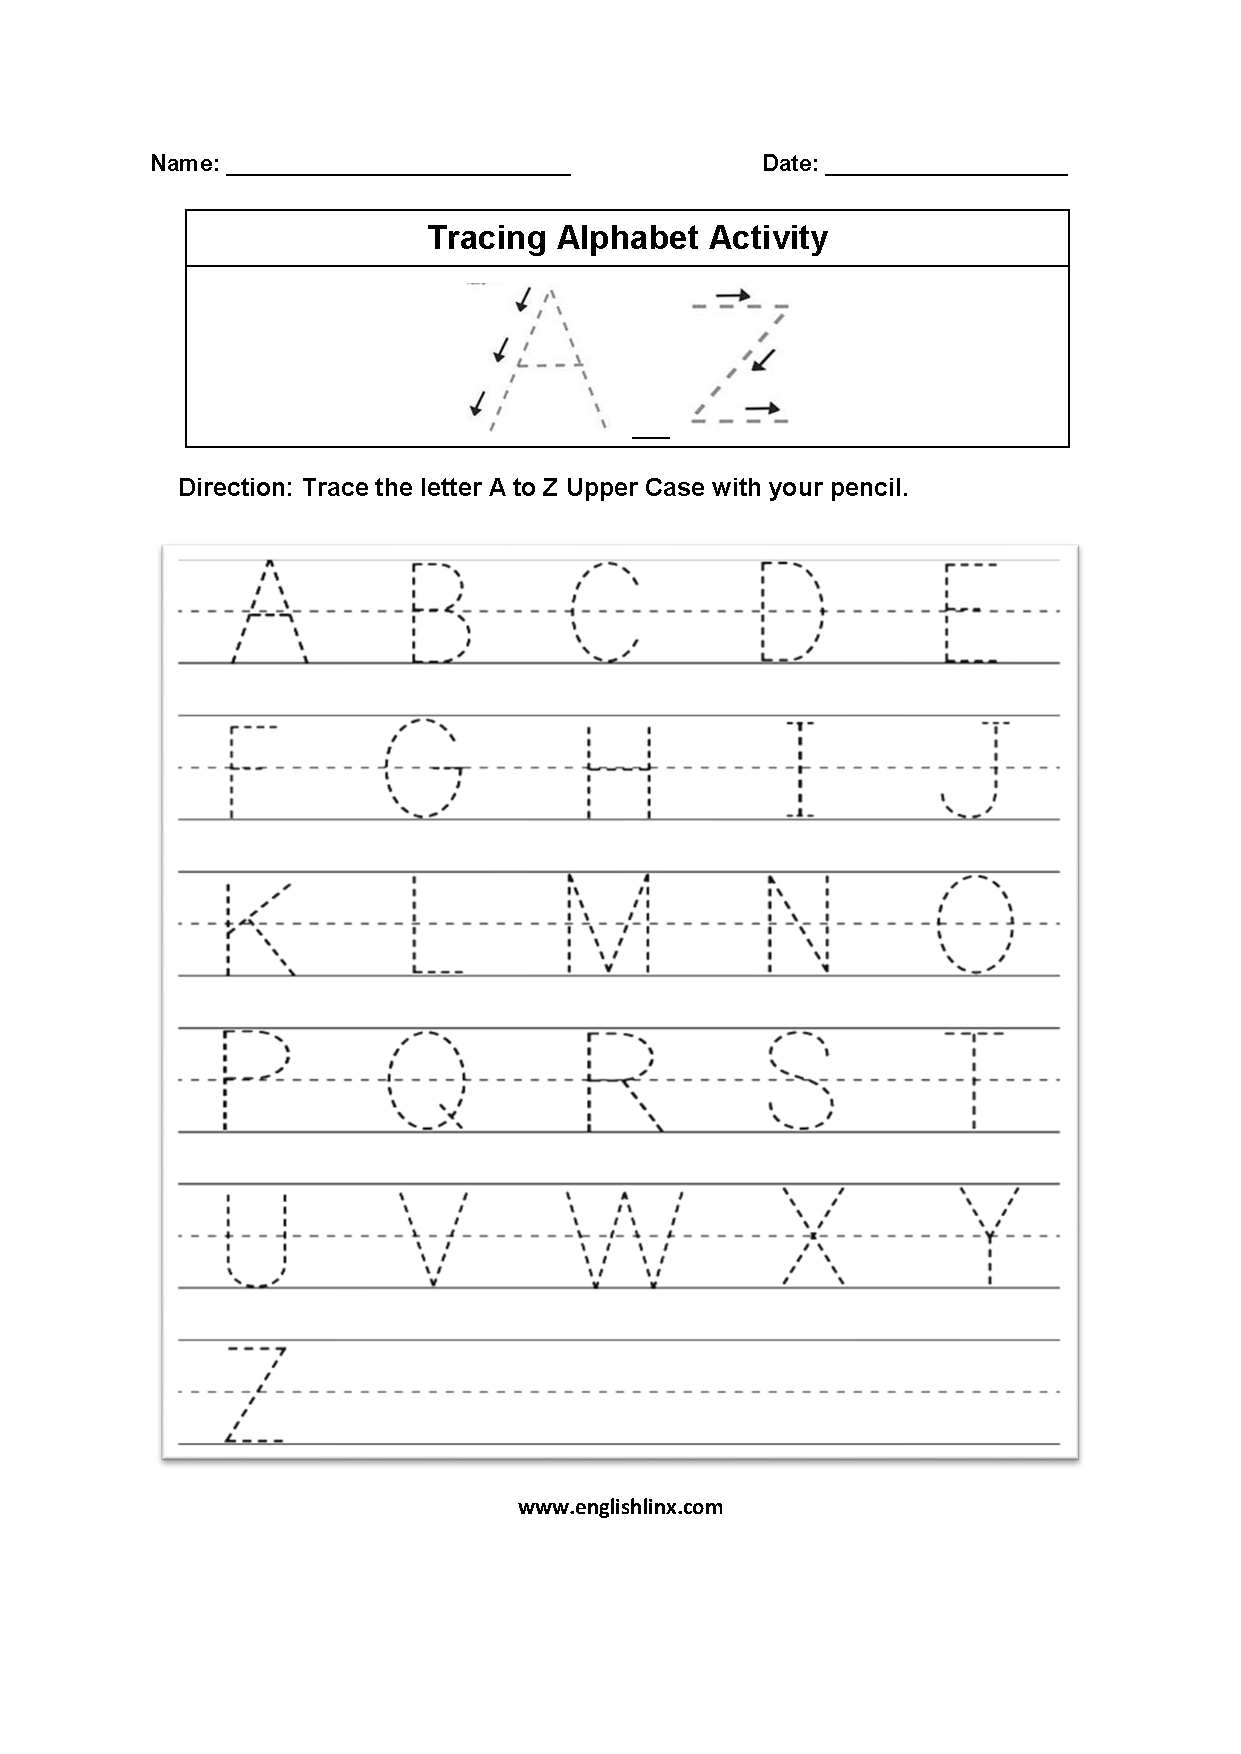 Alphabet Worksheets | Tracing Alphabet Worksheets intended for Alphabet Worksheets A To Z